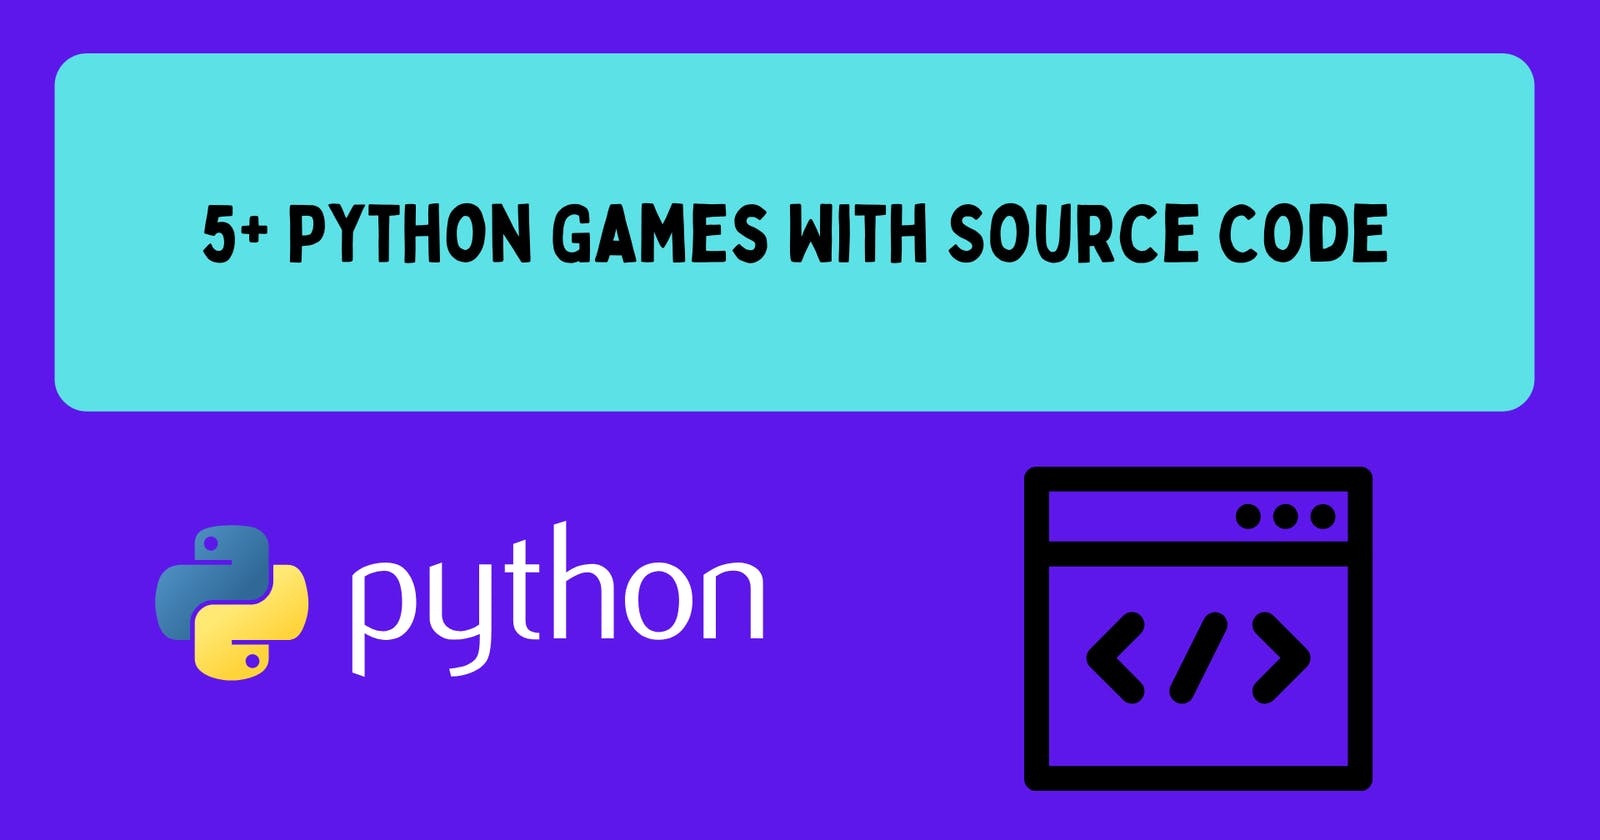 5+ Python Games With Source Code